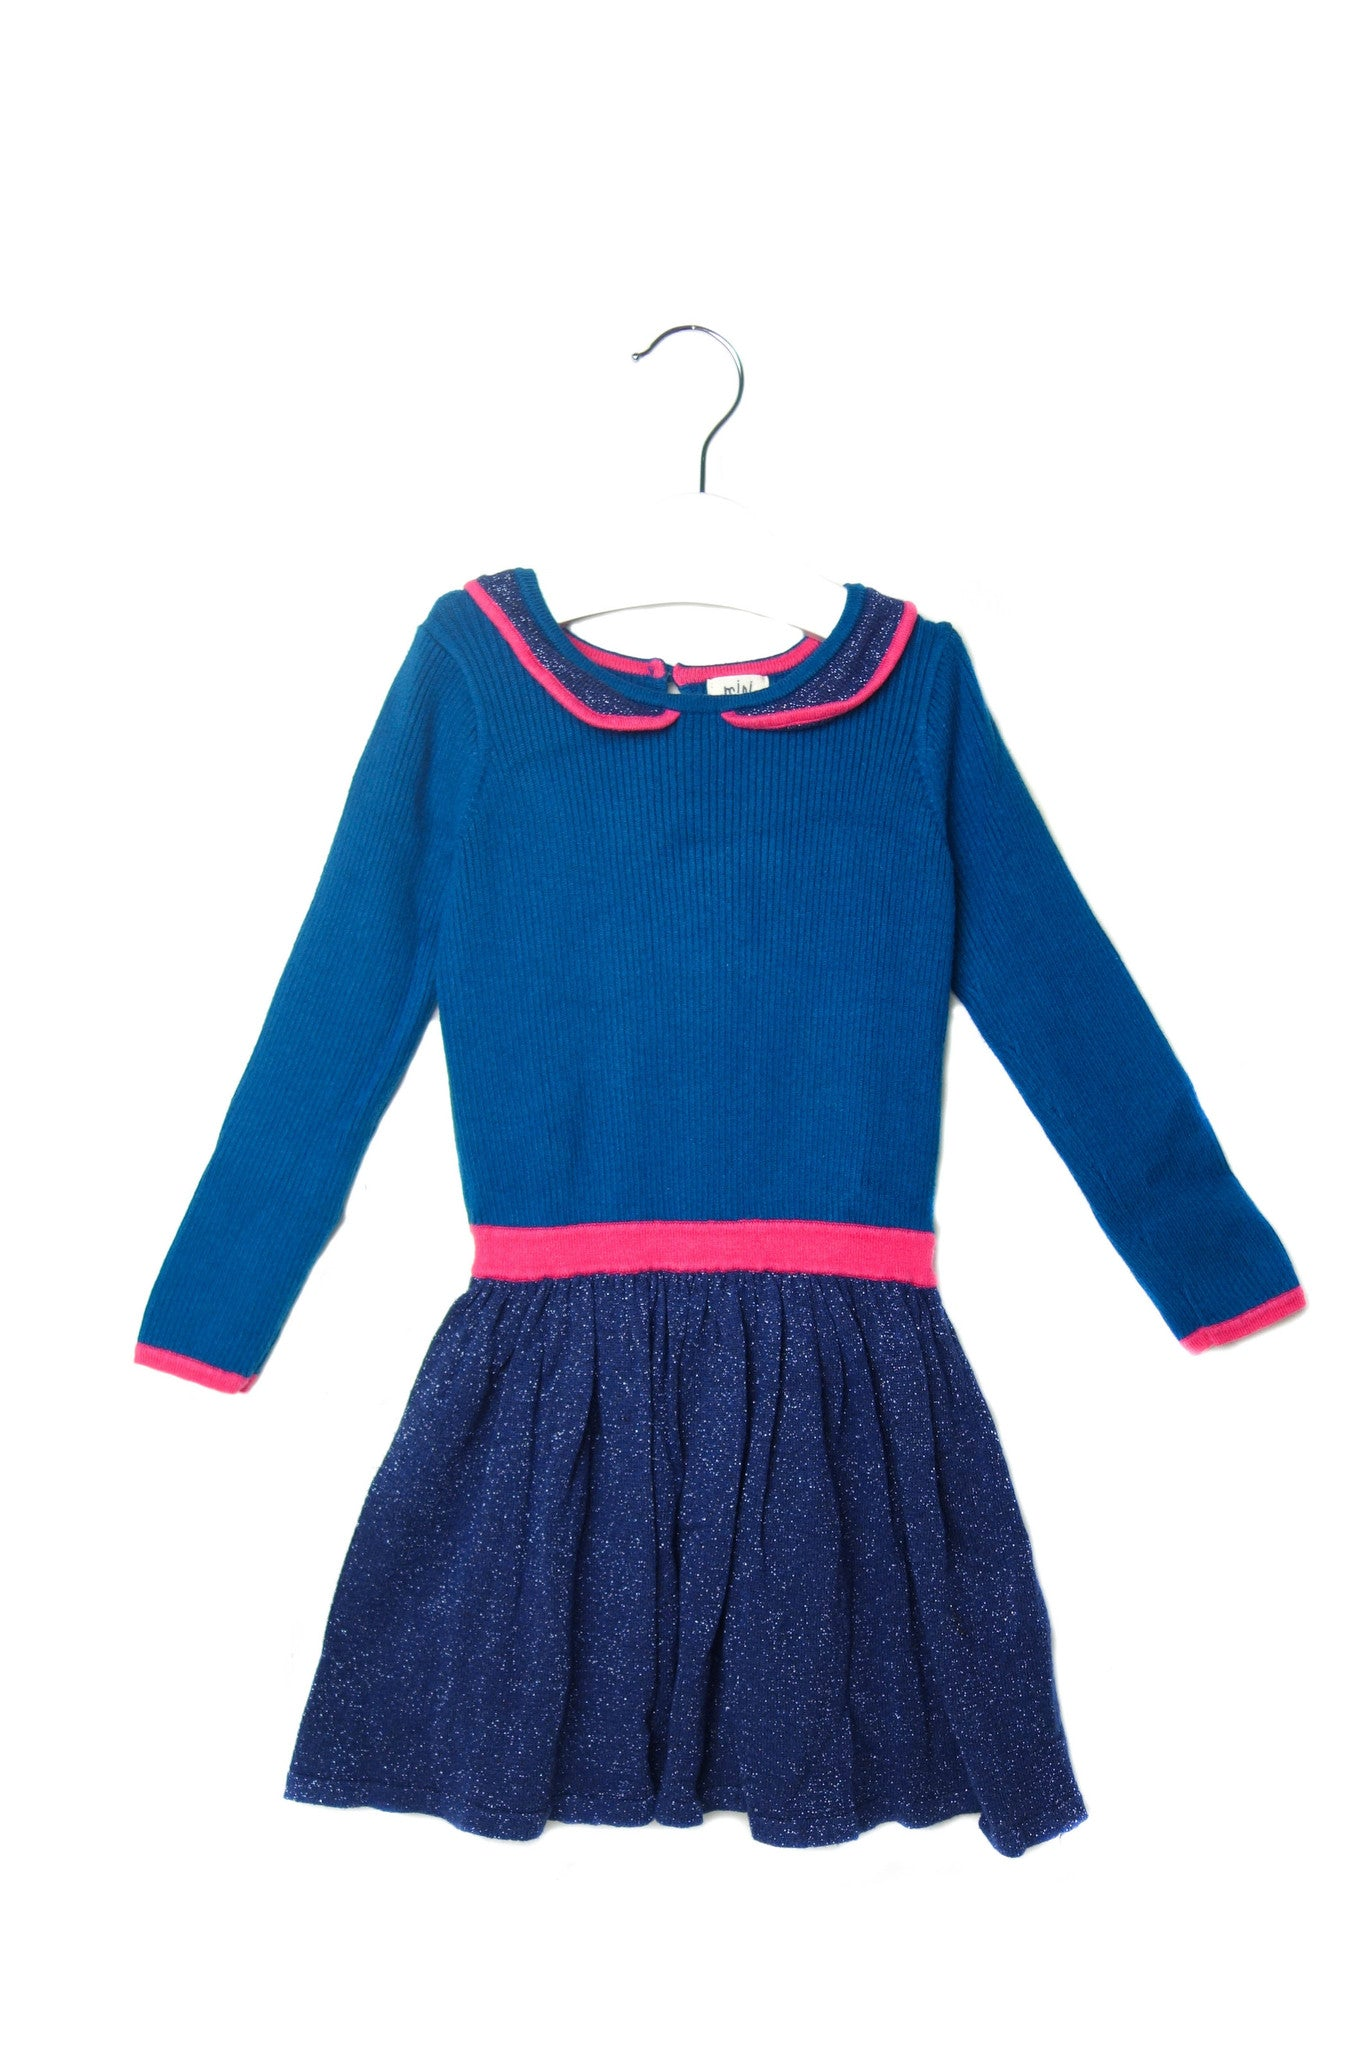 10001409~Dress 2-3T, Mini Boden at Retykle - Online Baby & Kids Clothing Up to 90% Off